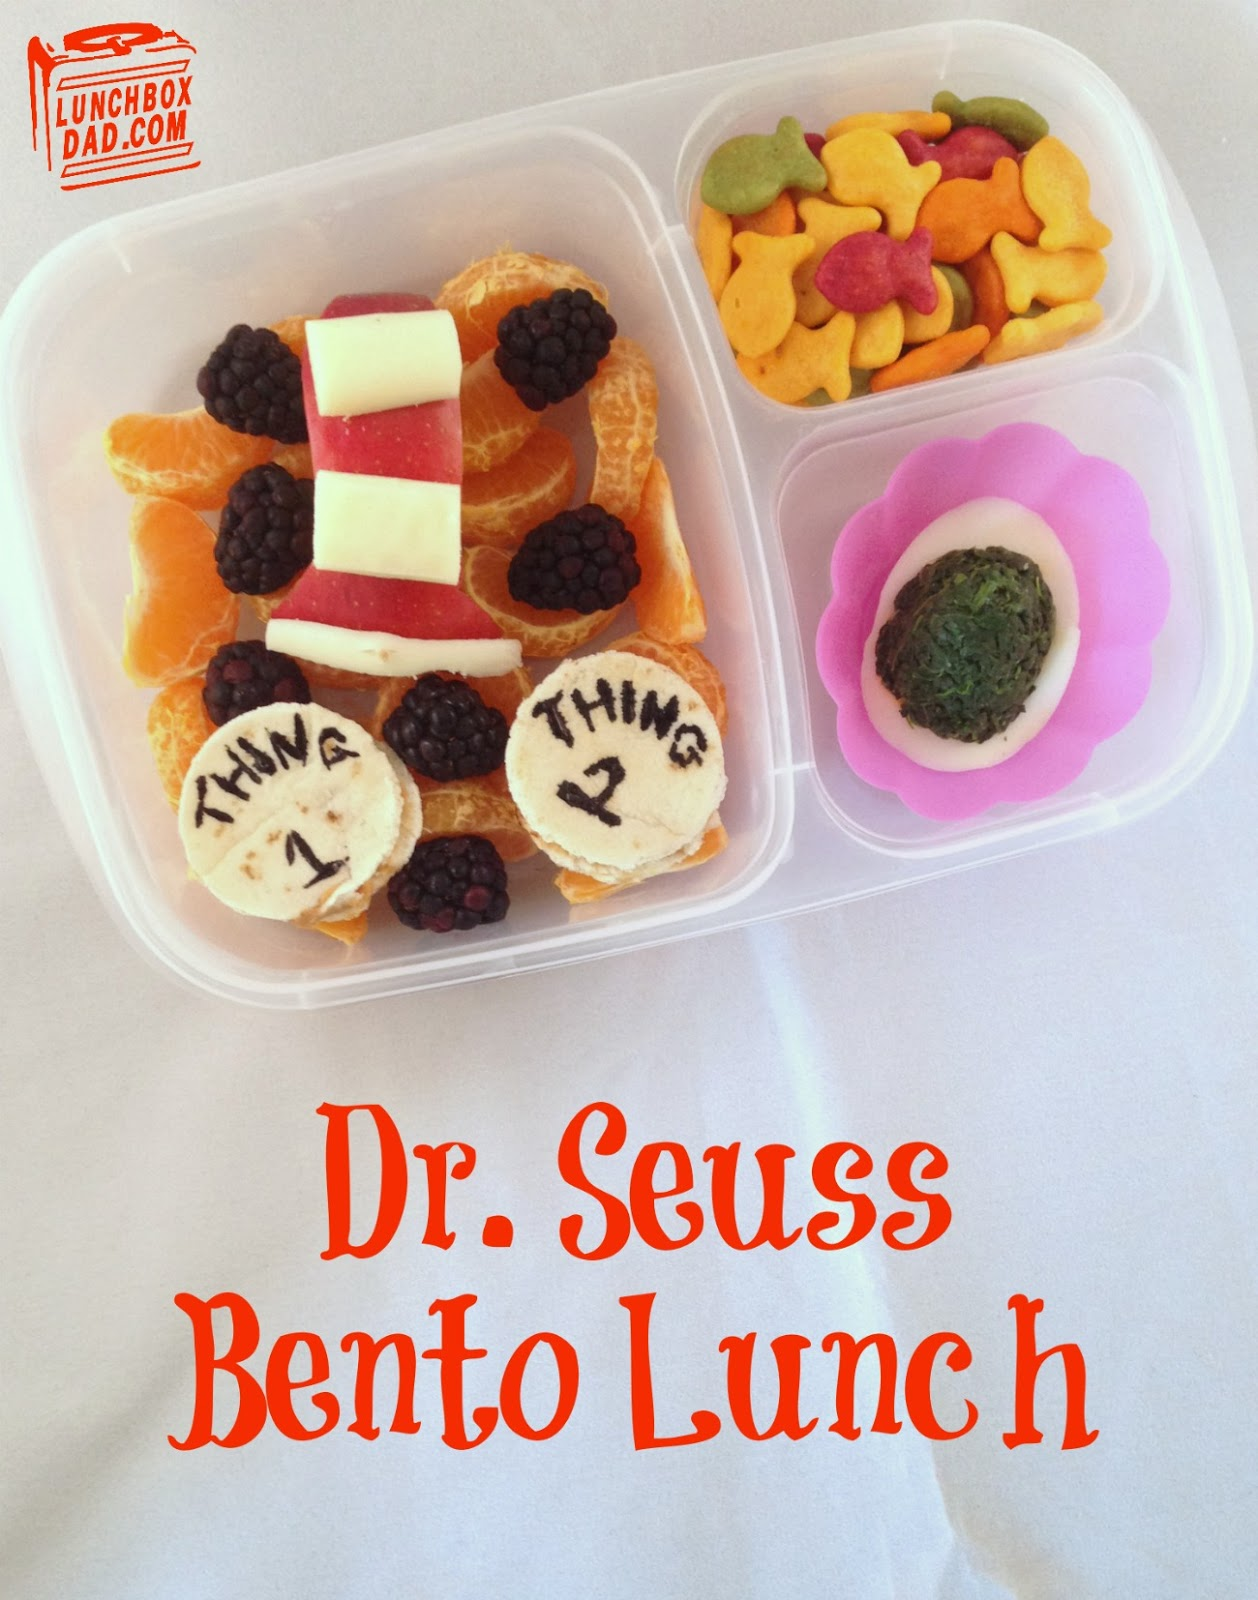 Dr. Seuss Bento Lunch